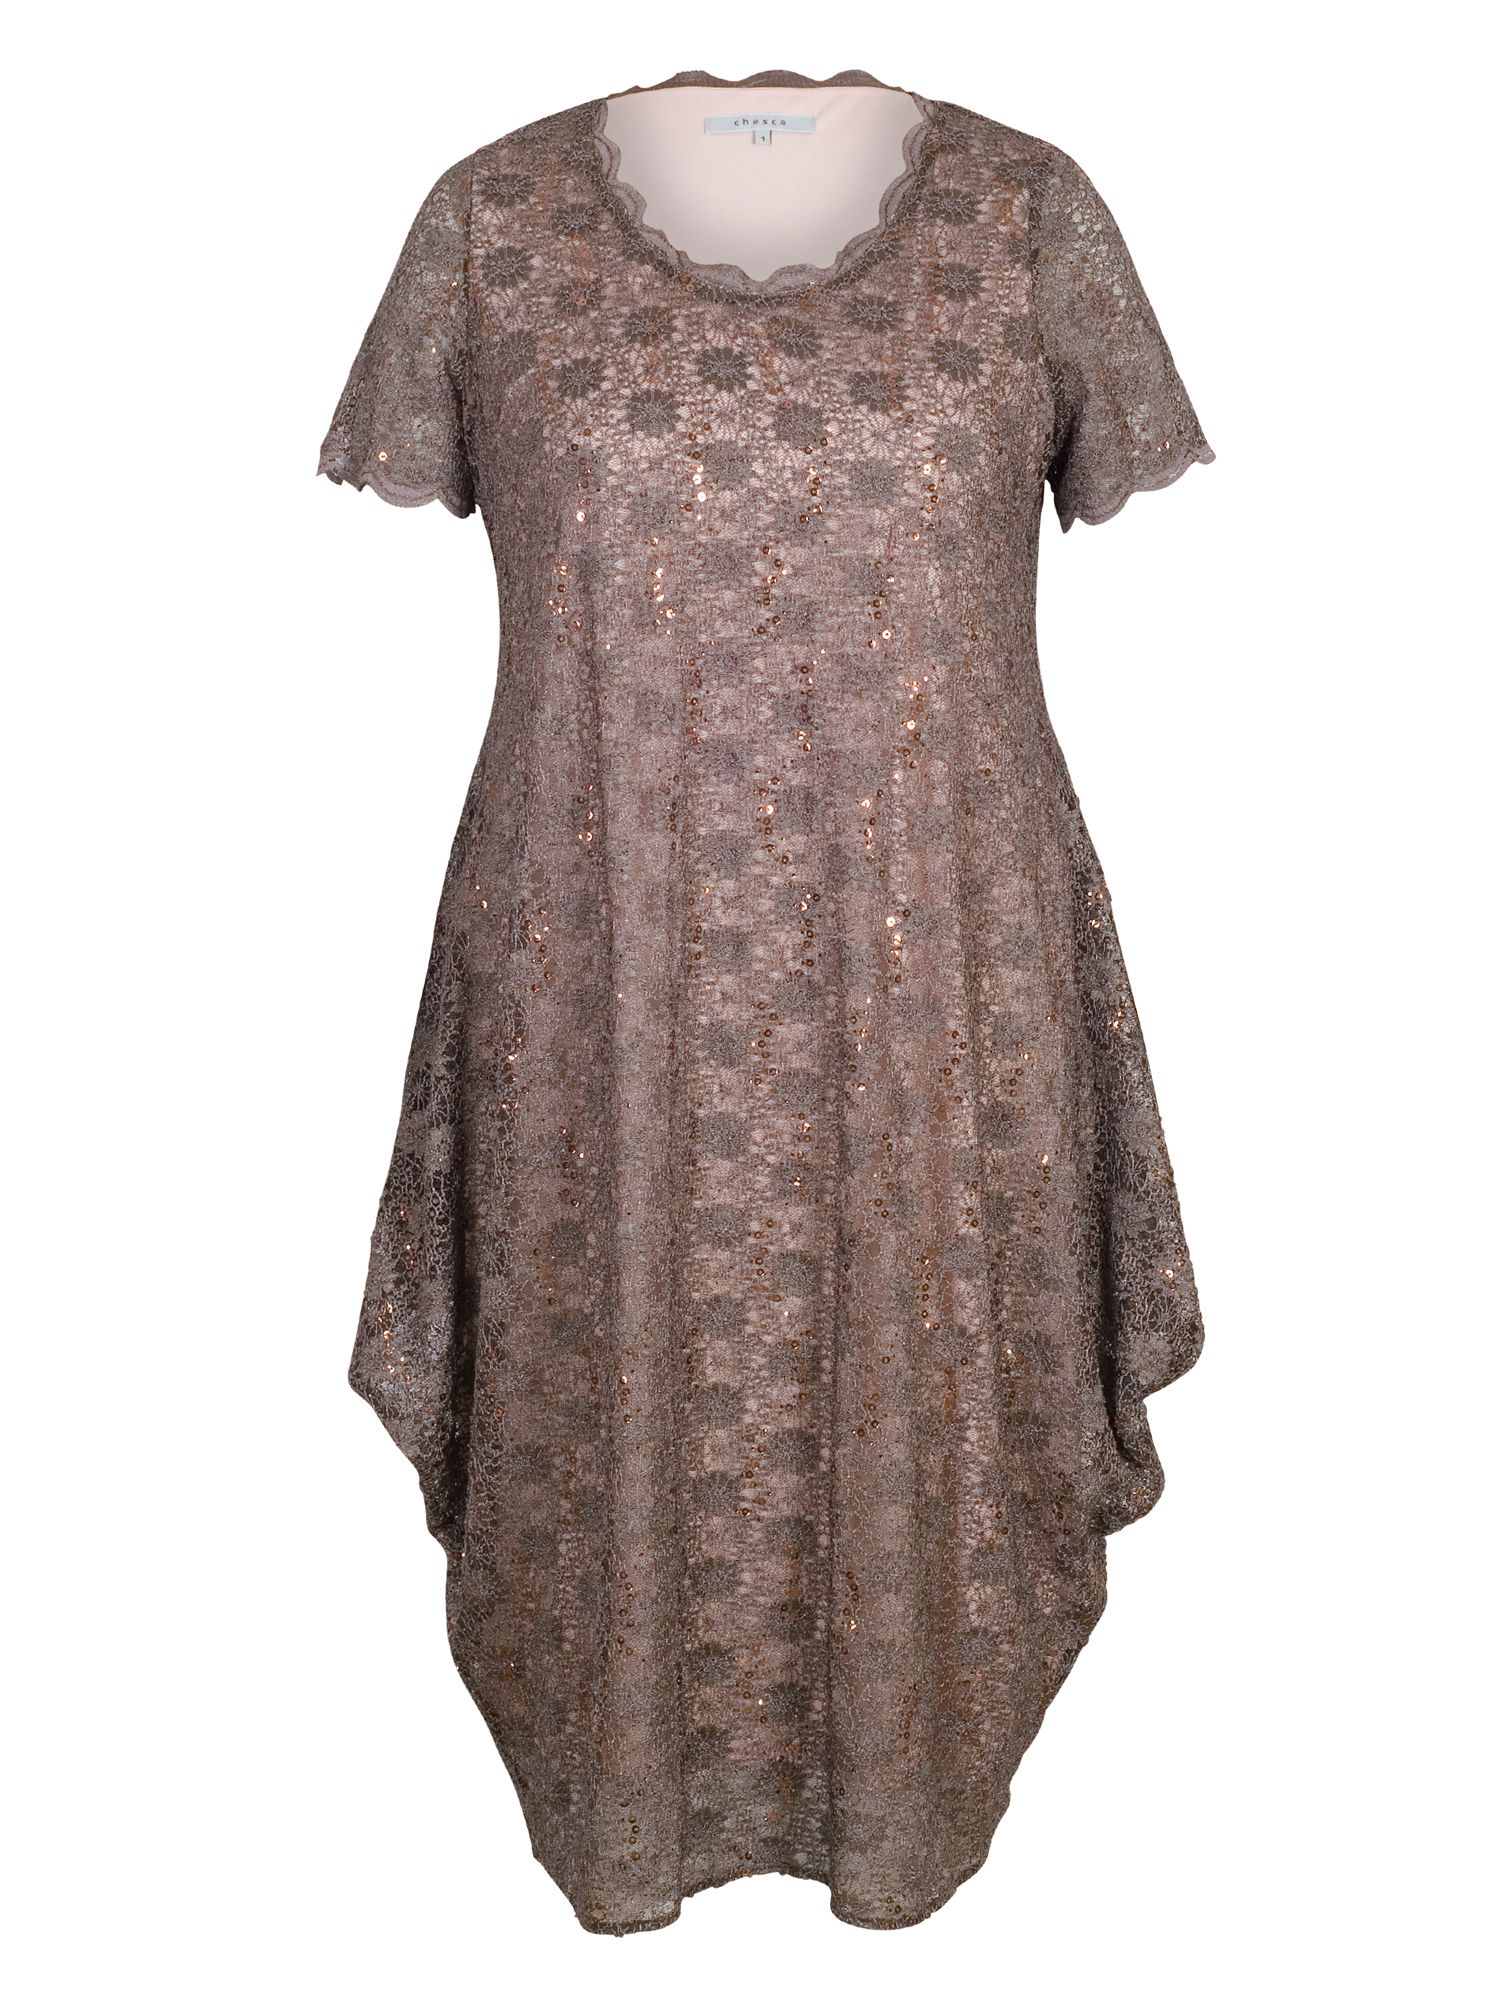 Chesca Scallop Lace & Sequin Trim Drape Dress, Brown